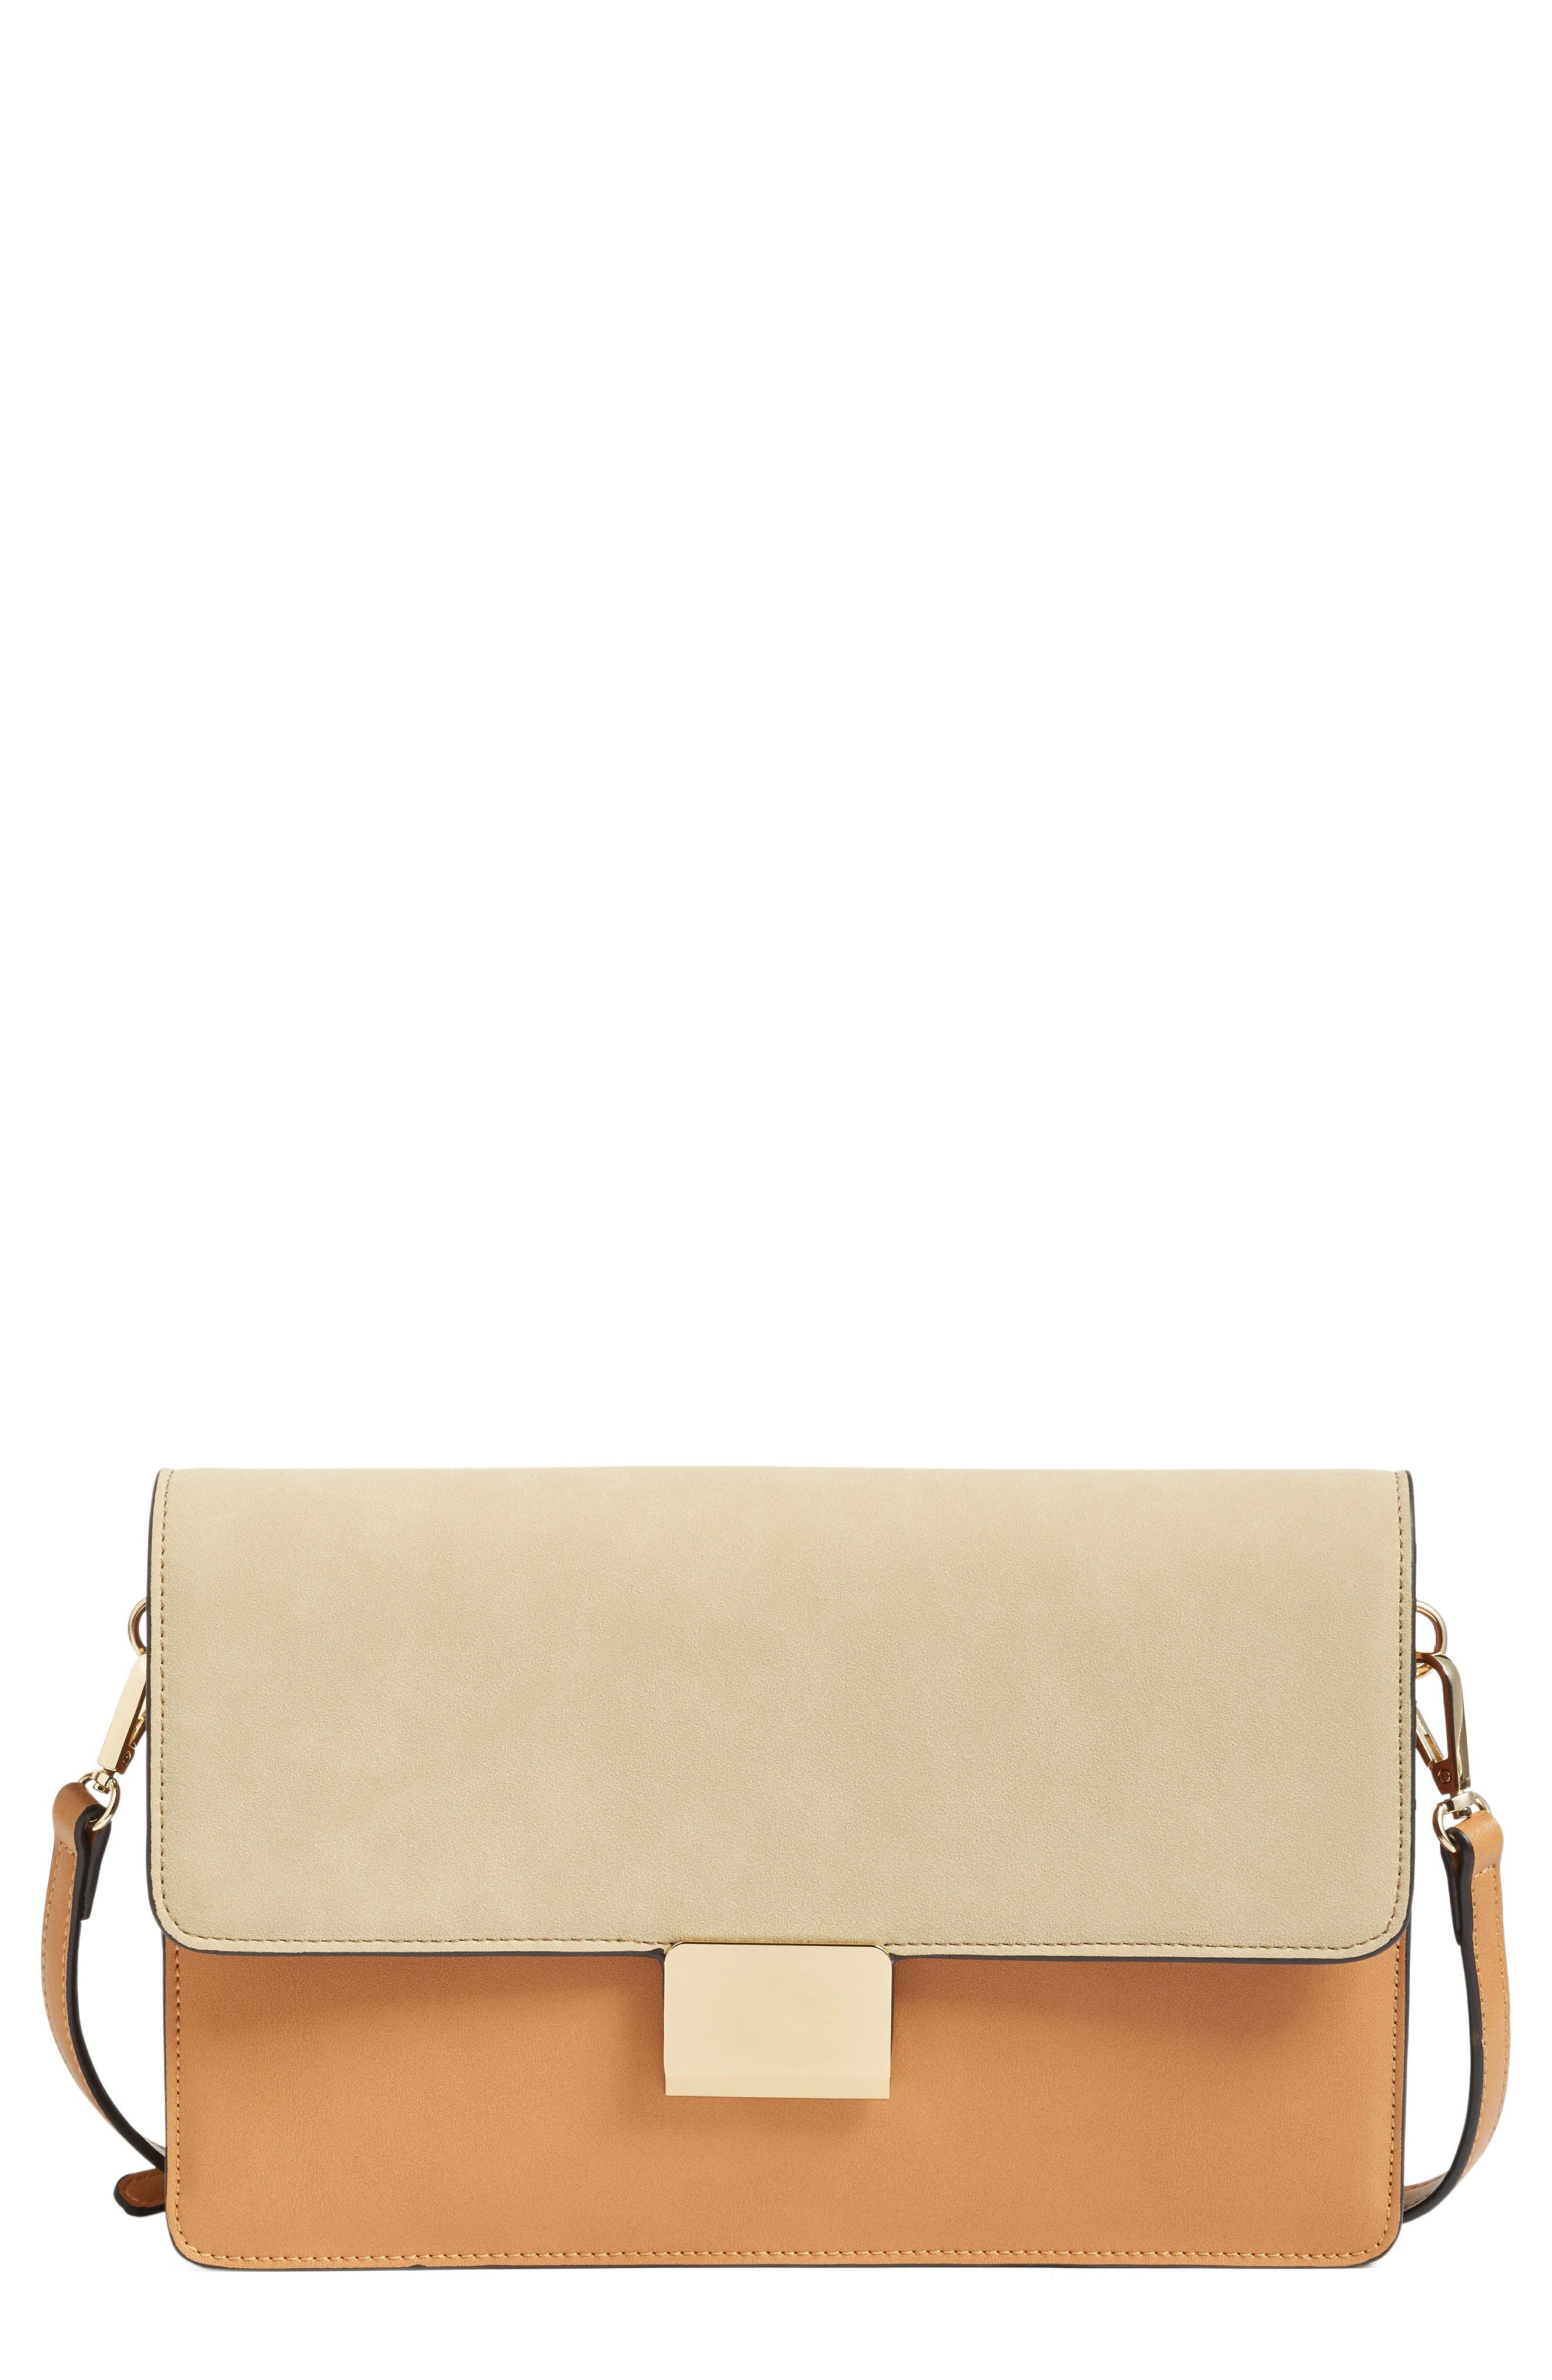 Chelsea28 Leighton Colorblock Faux Leather Crossbody Bag